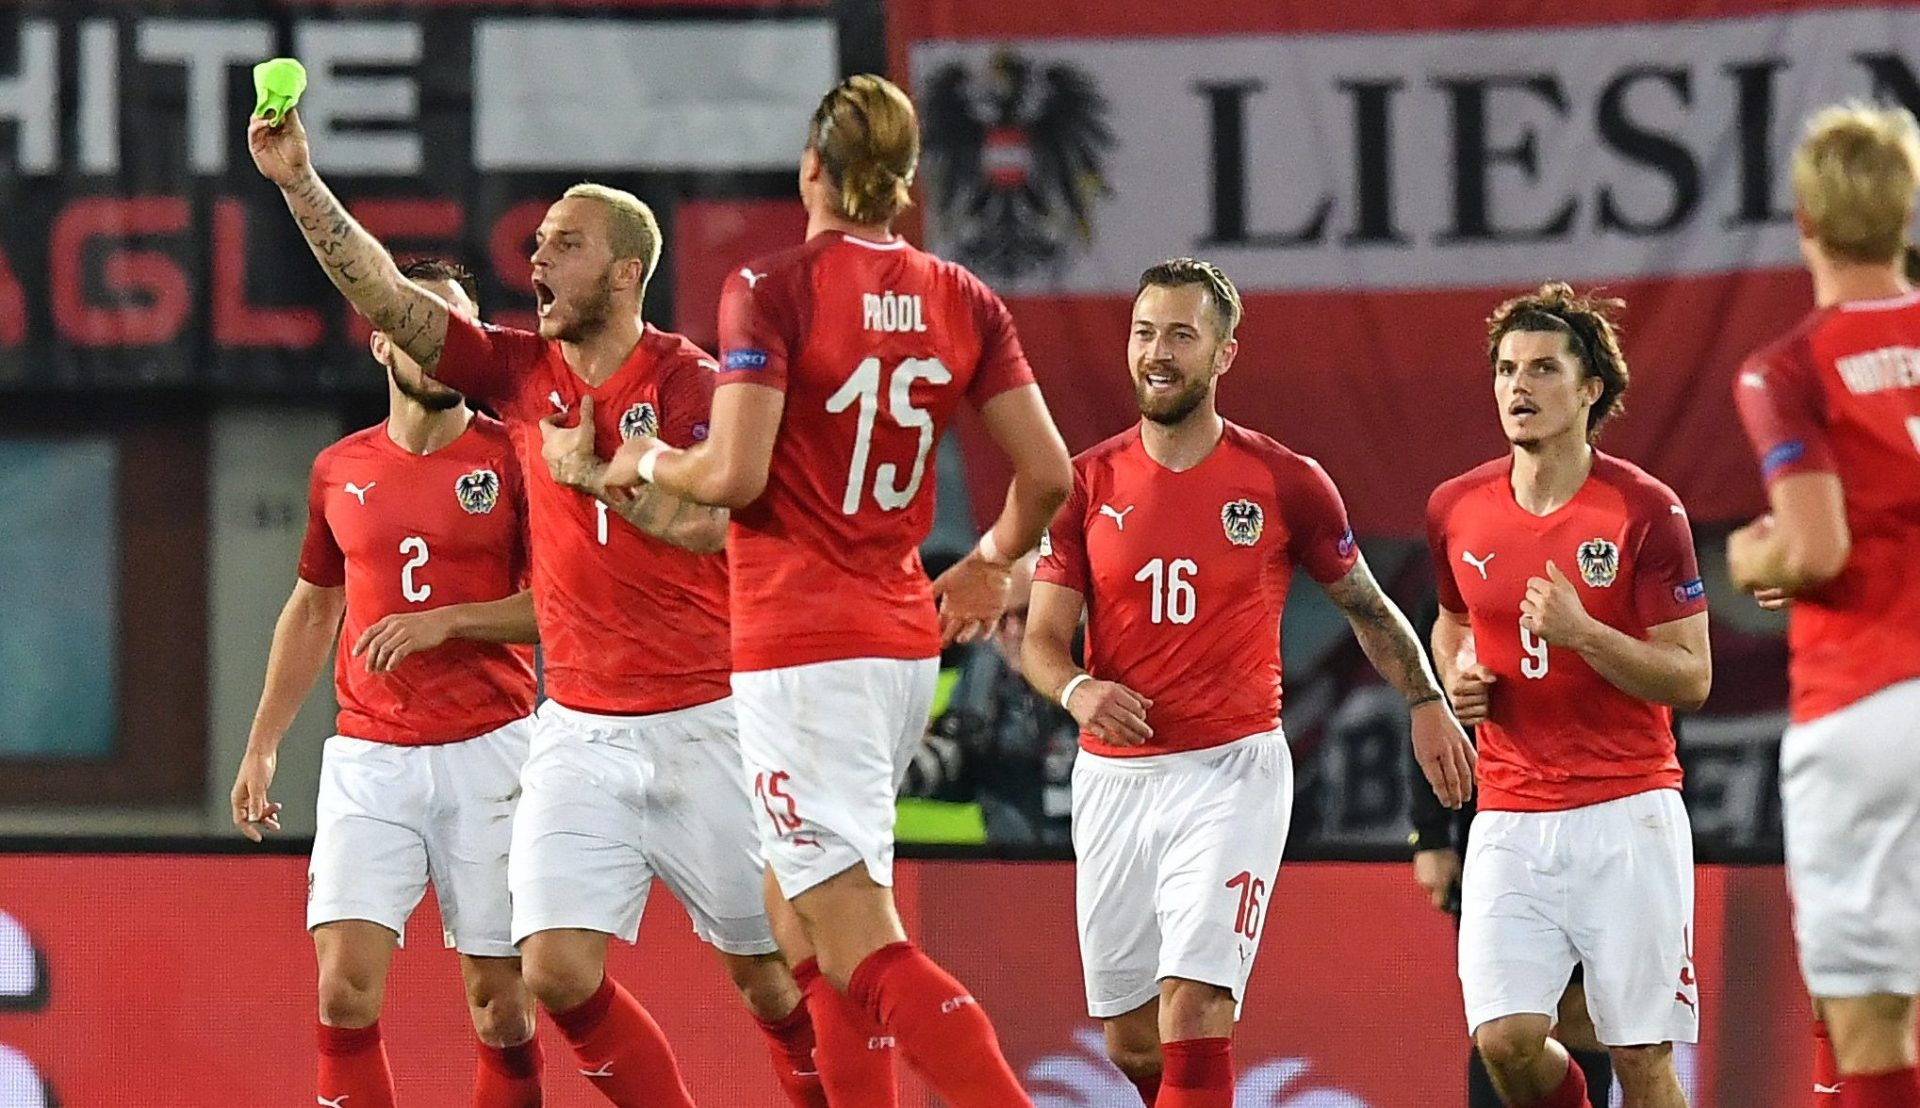 Austria VS. Poland: live streaming details, kick off time, preview & how to watch online